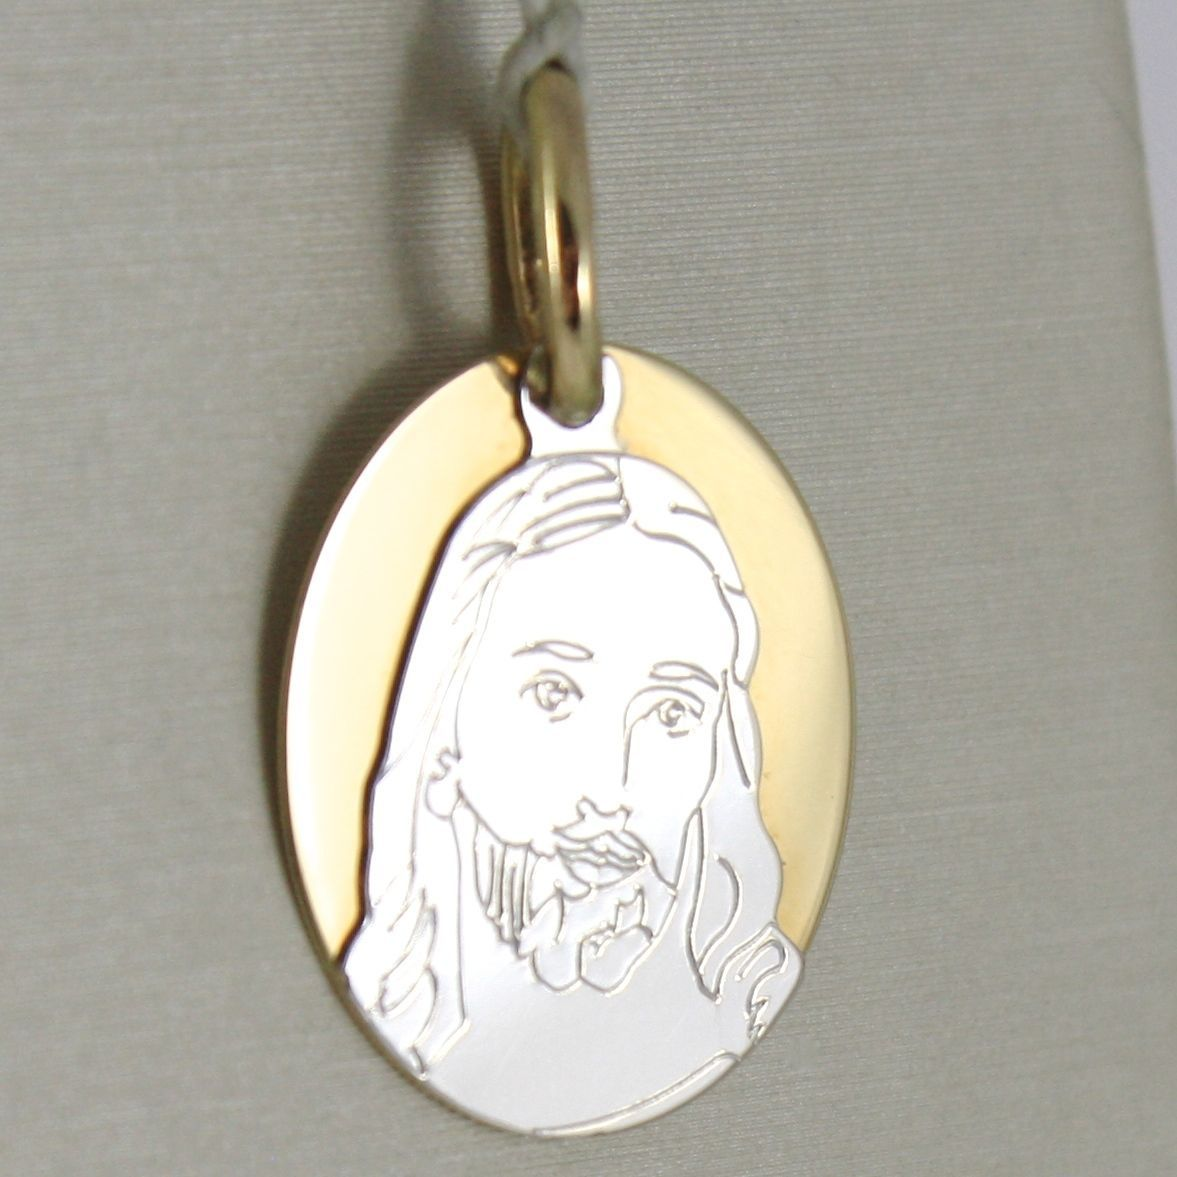 PENDANT MEDAL YELLOW GOLD AND WHITE 750 18K OVAL, WITH FACE OF CHRIST